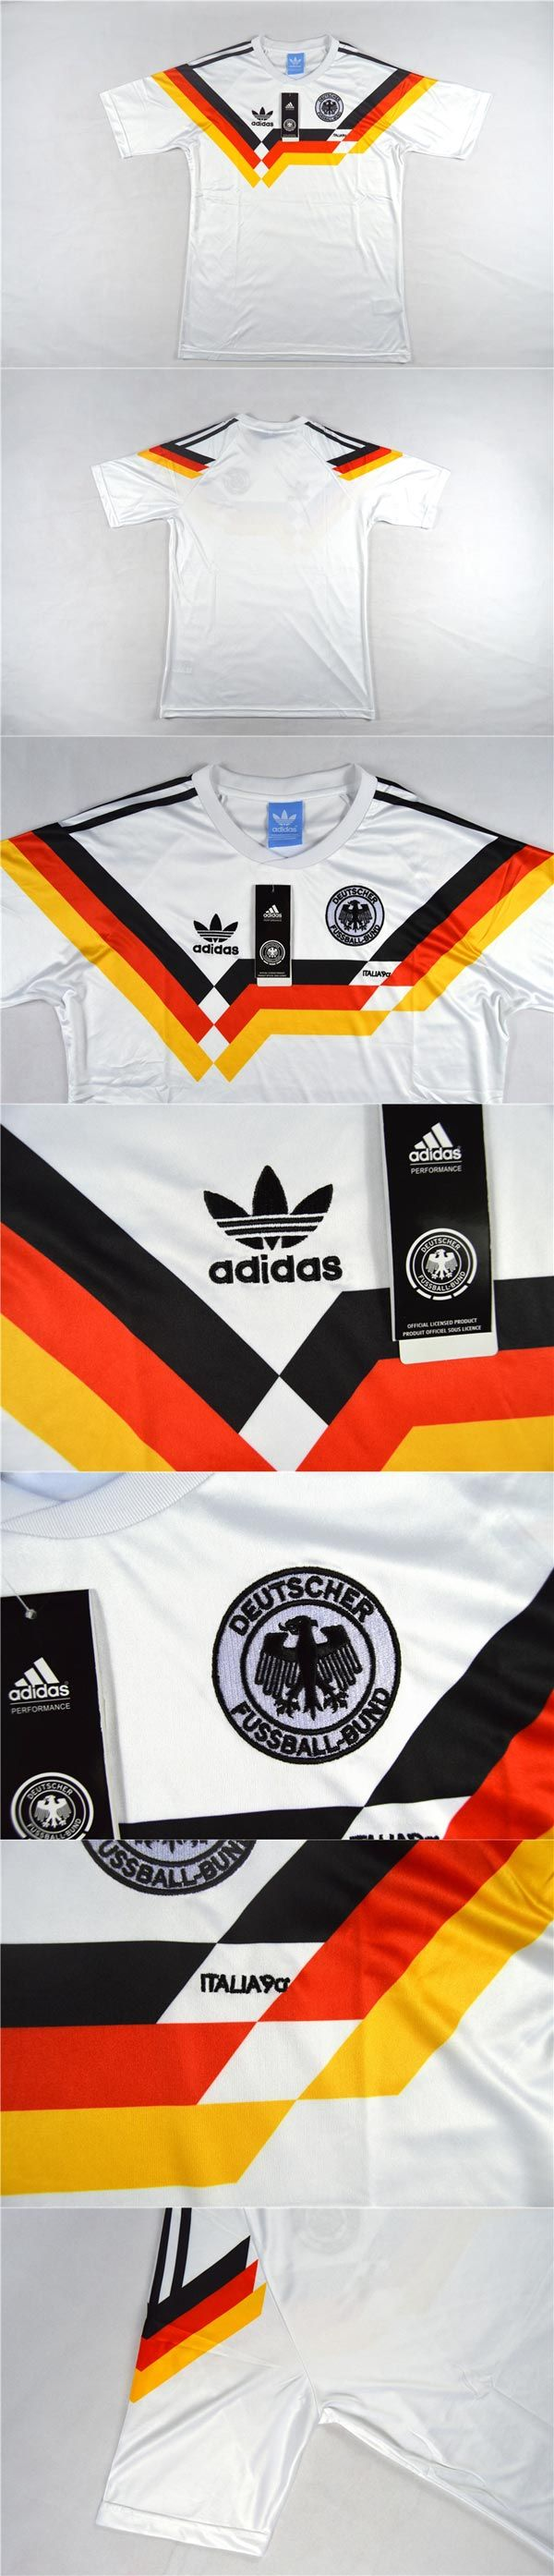 08392382c 1990 #WestGermany #Retro Home #Soccer #Jersey #Shirt, #germany , #cheap  soccer jerseys #onlinemarketing #store #buying available